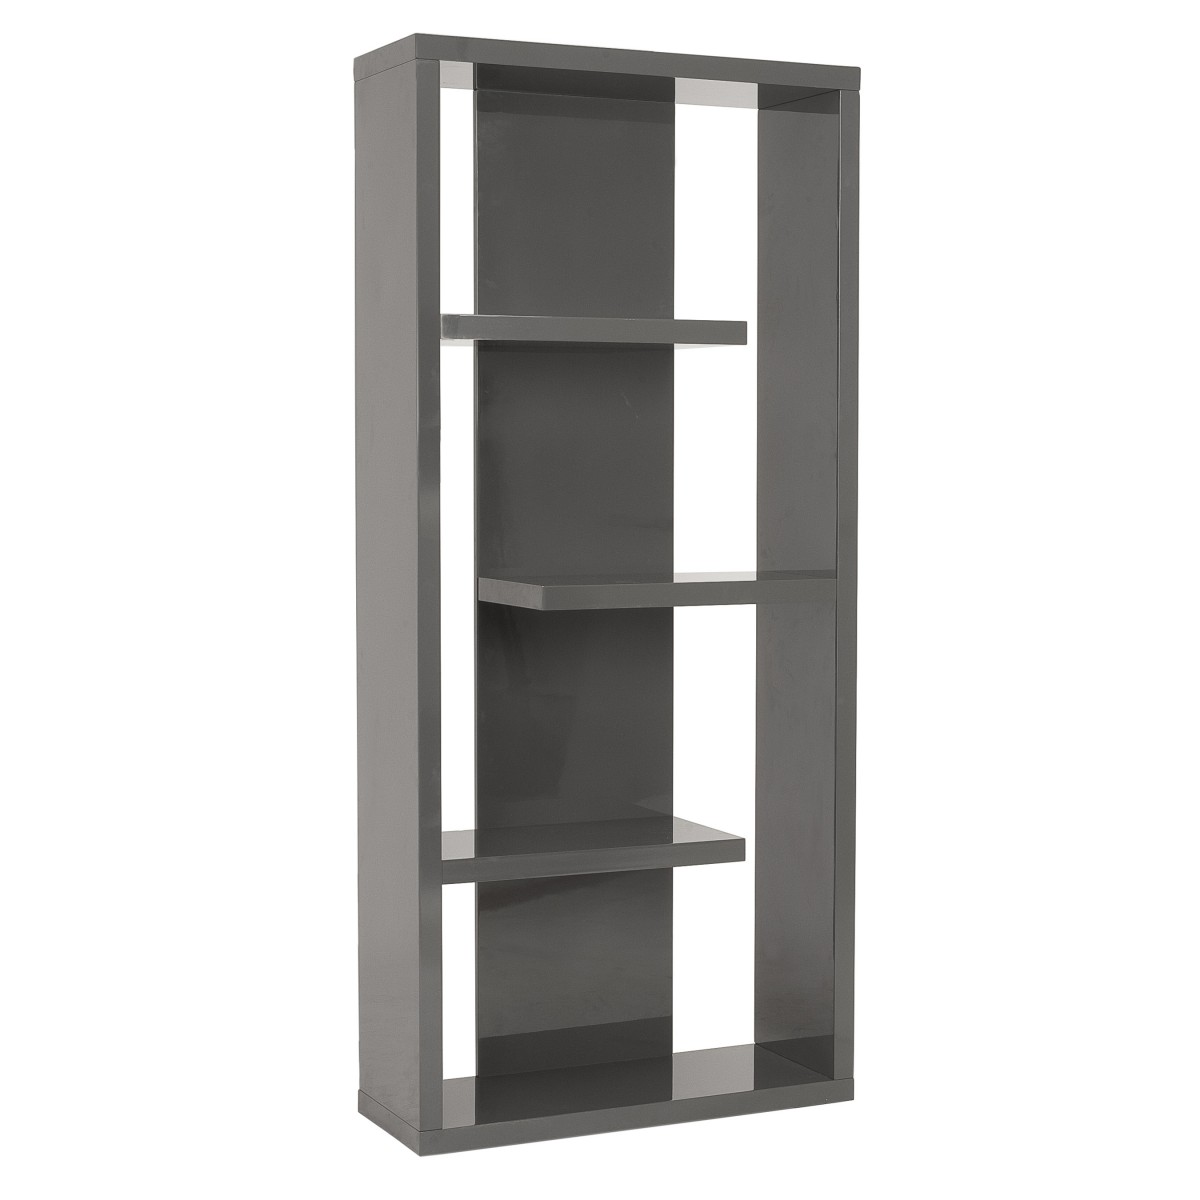 Image of: Top Grey Bookcase